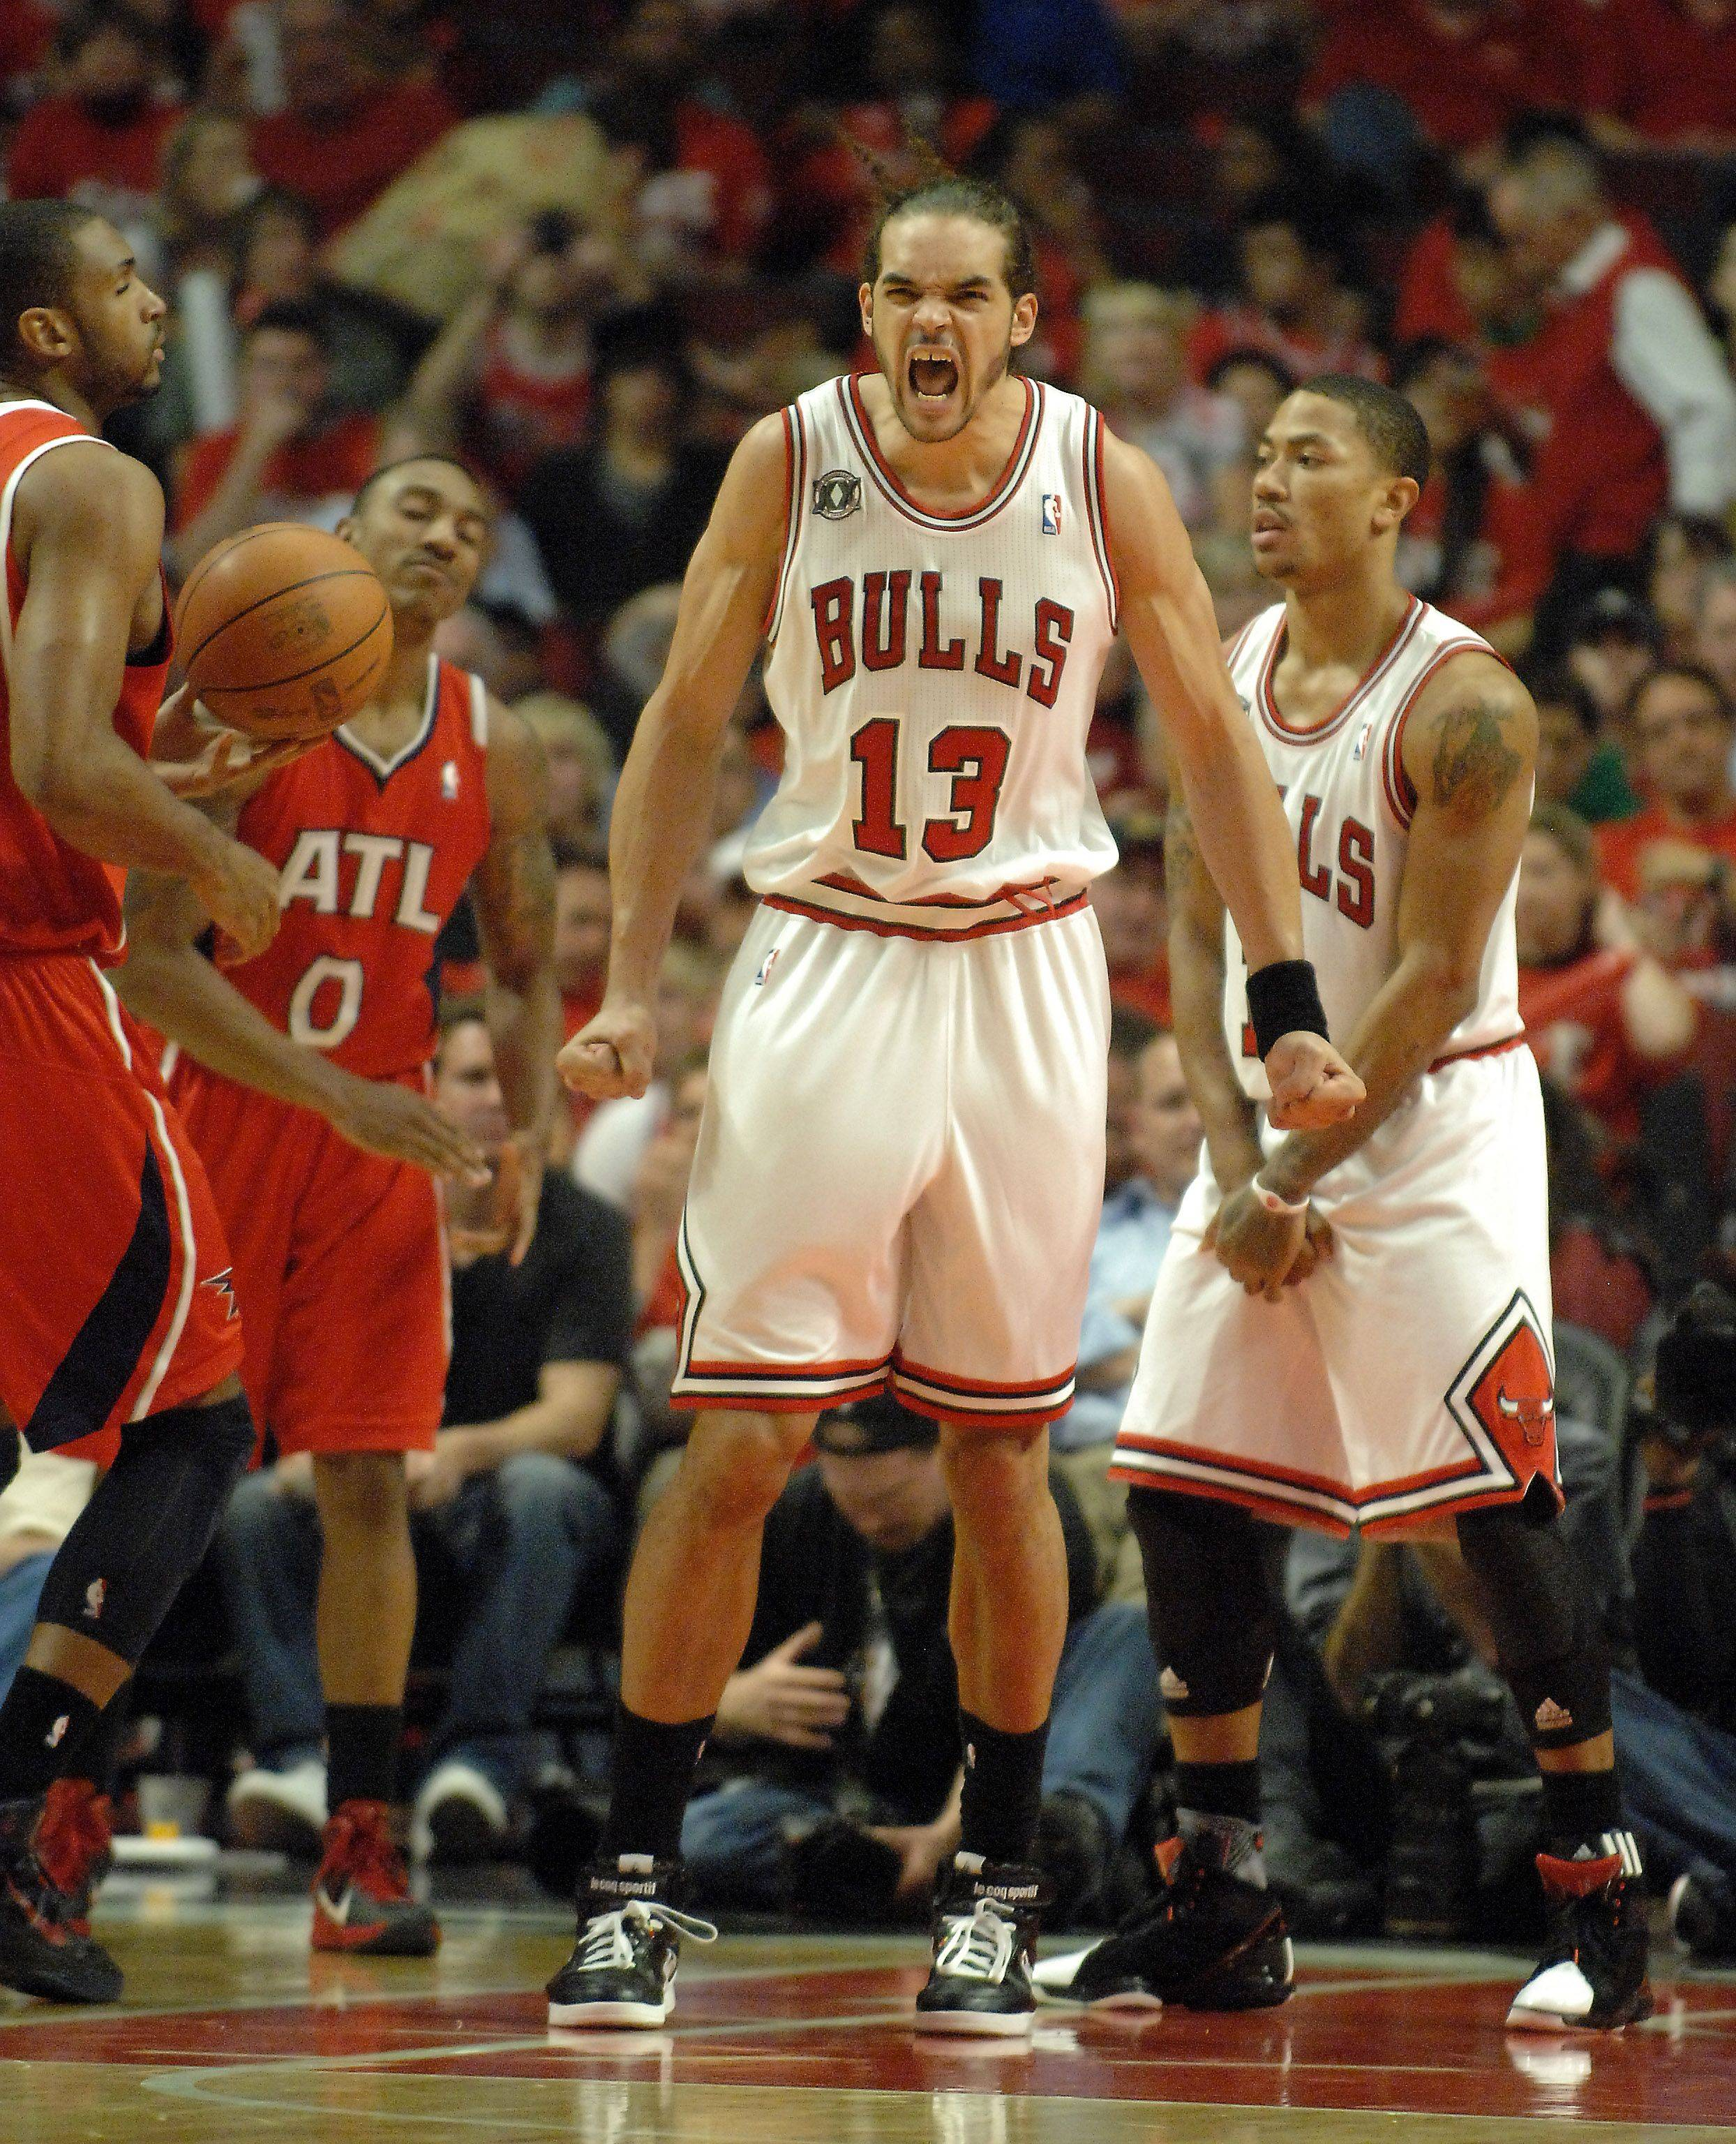 Joakim Noah gets fired up during game 5 of the Eastern Conference semifinals.